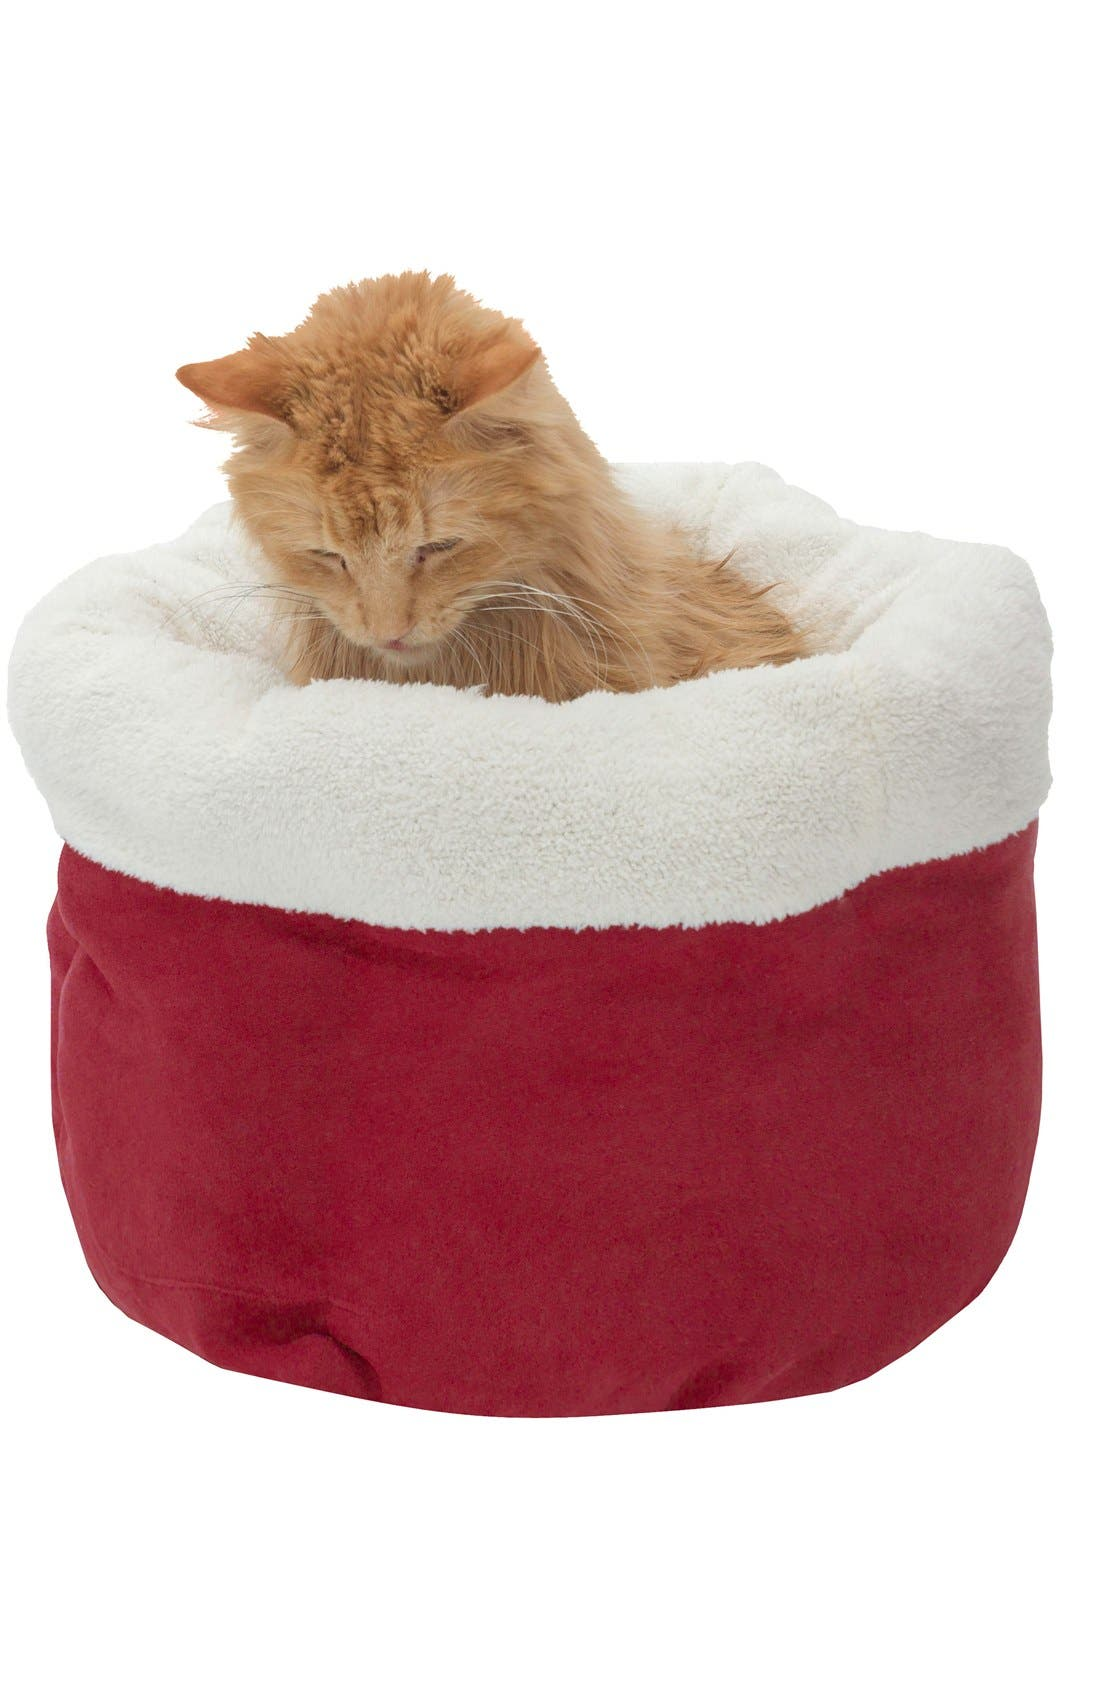 Barclay Pet Bed,                         Main,                         color, Red